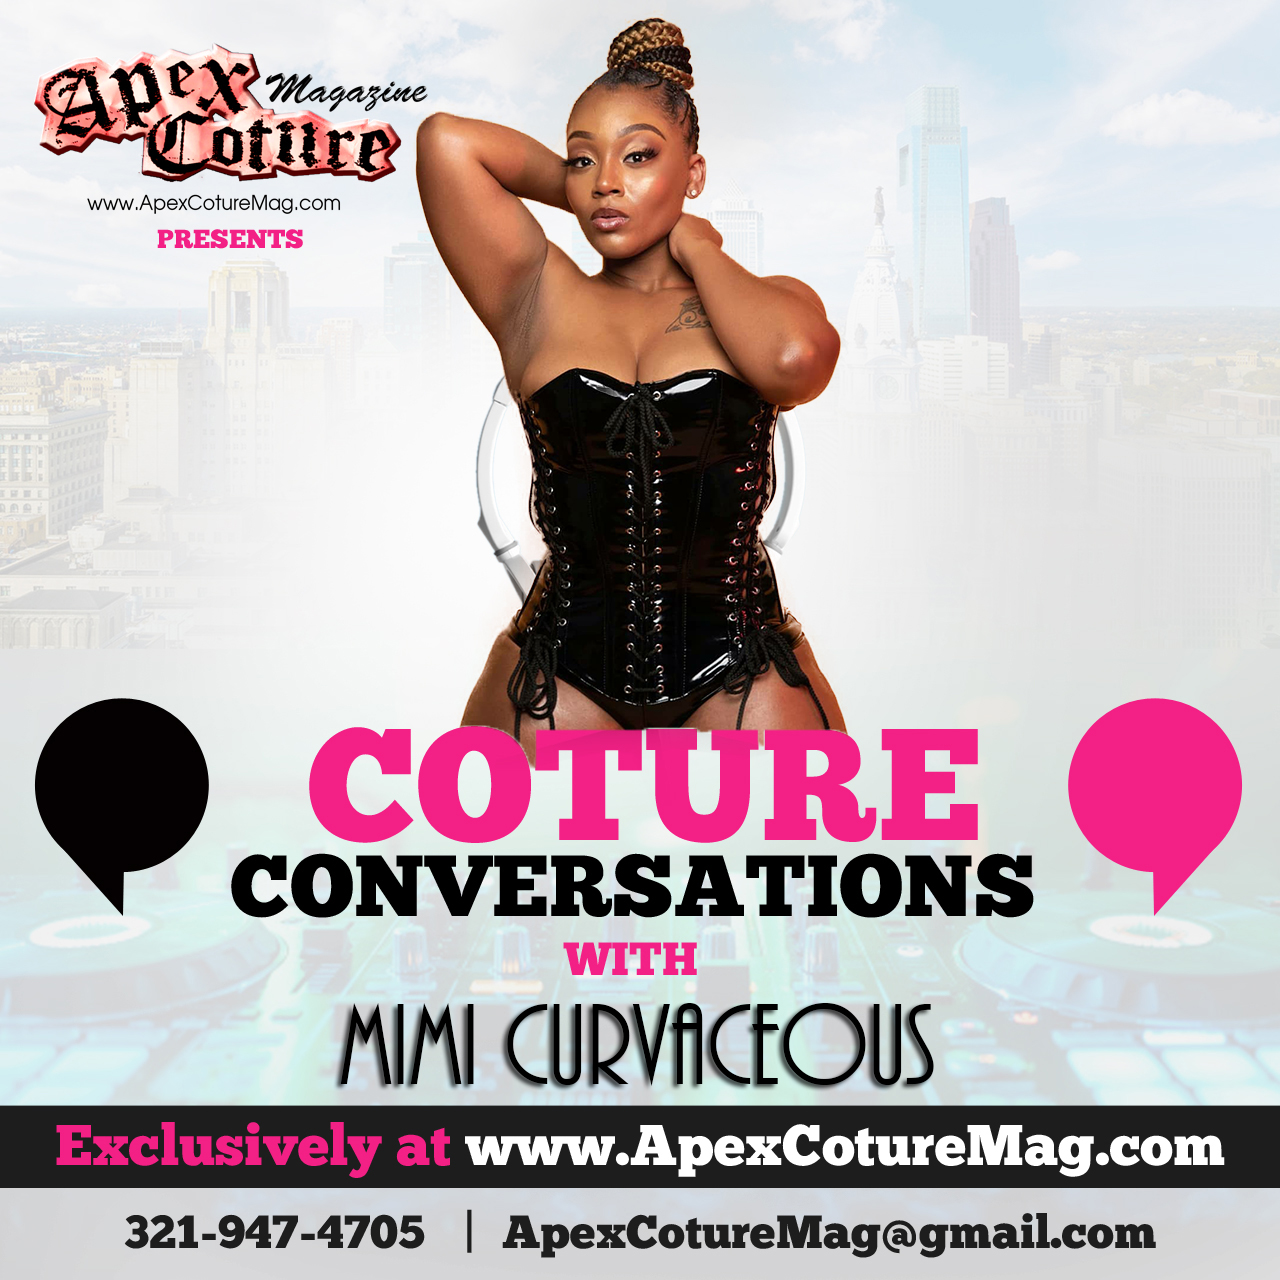 Mimi Curvaceous Coture Conversation